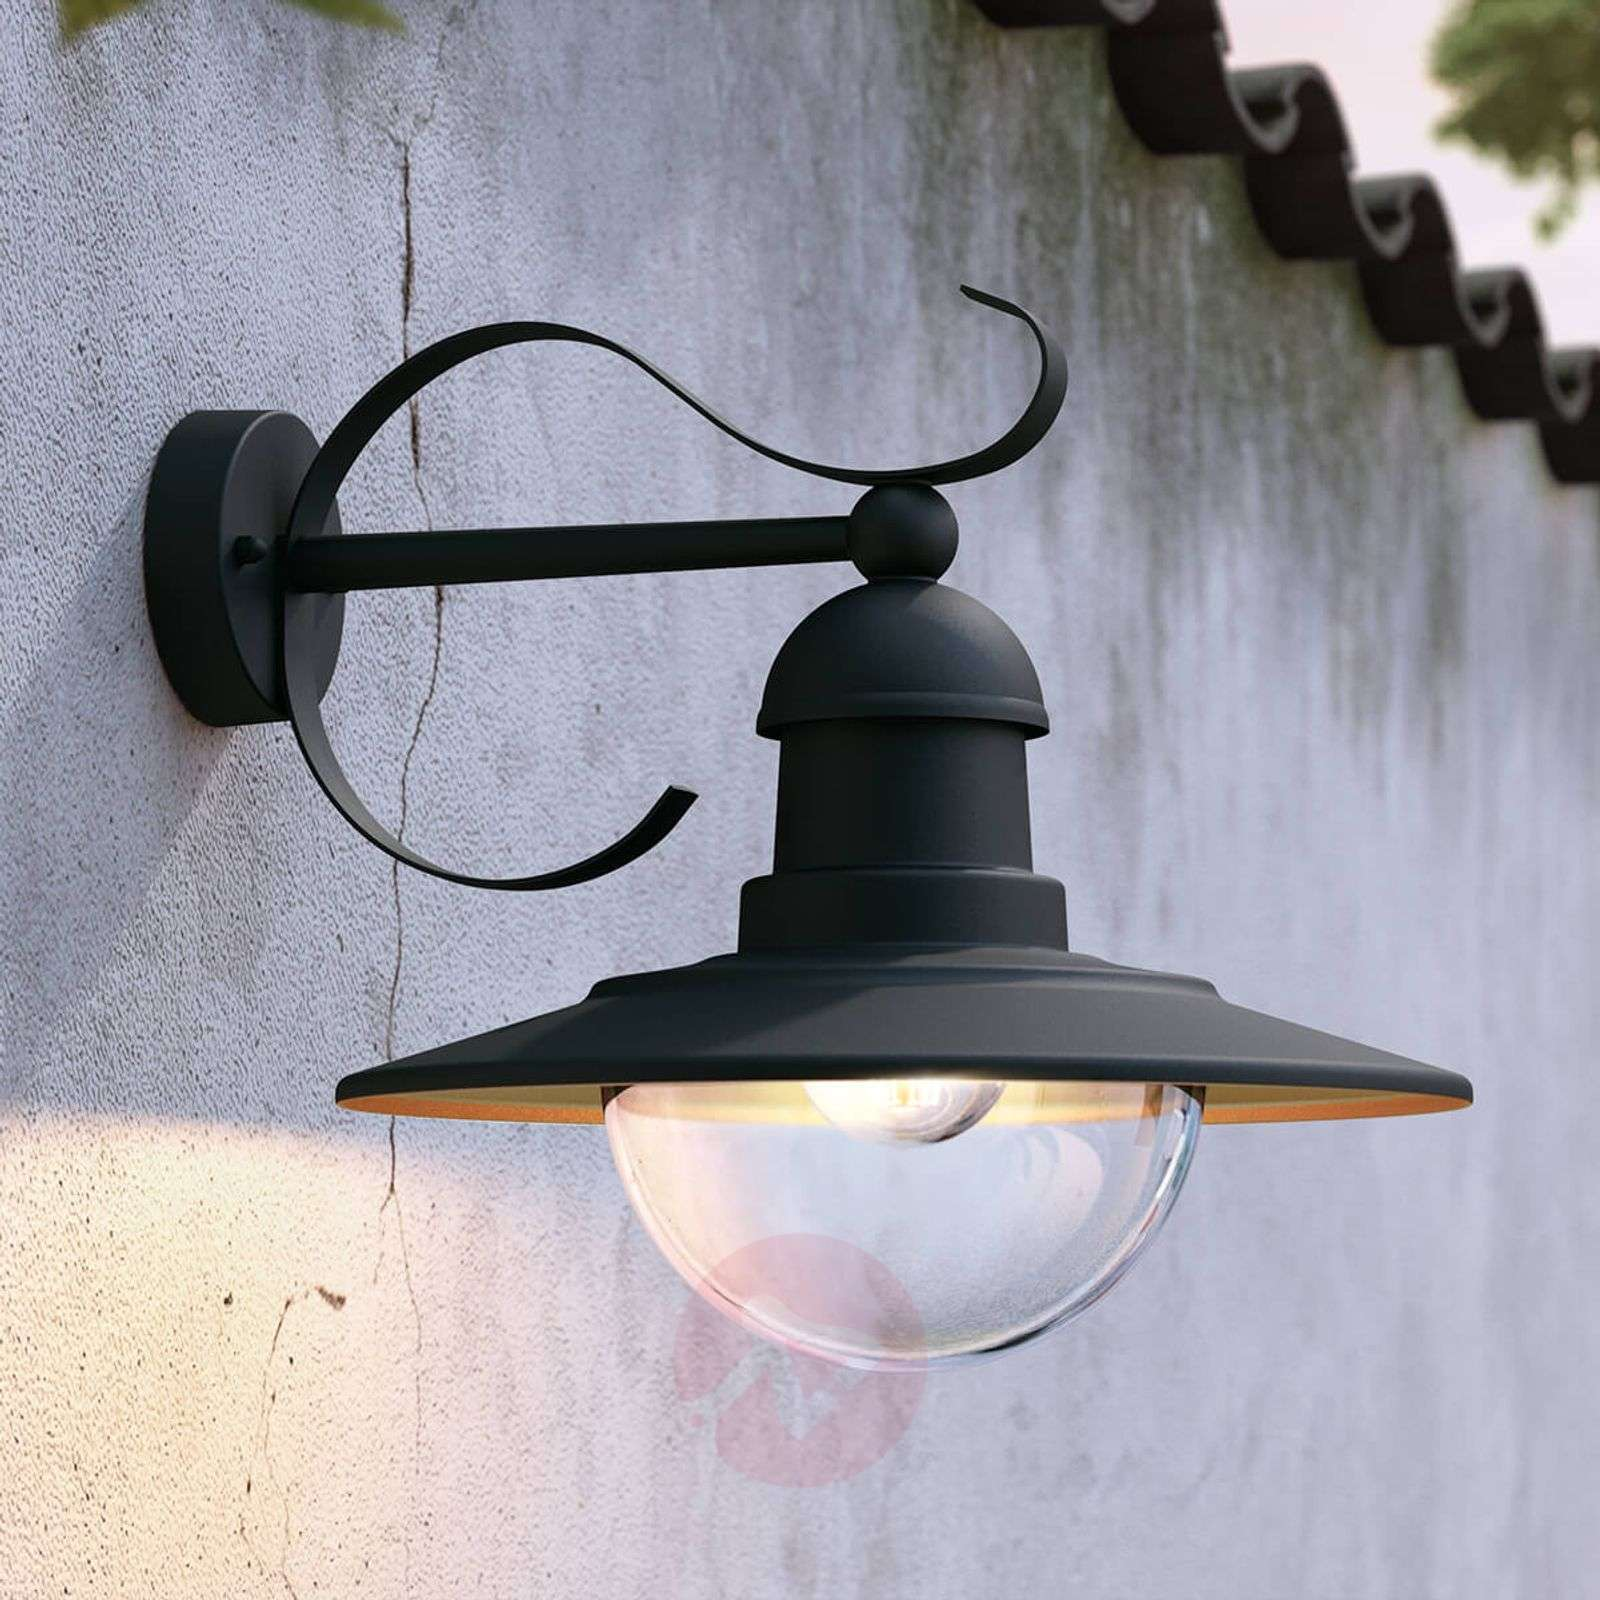 Decorative outdoor wall light Topiary myGarden-7531956-01